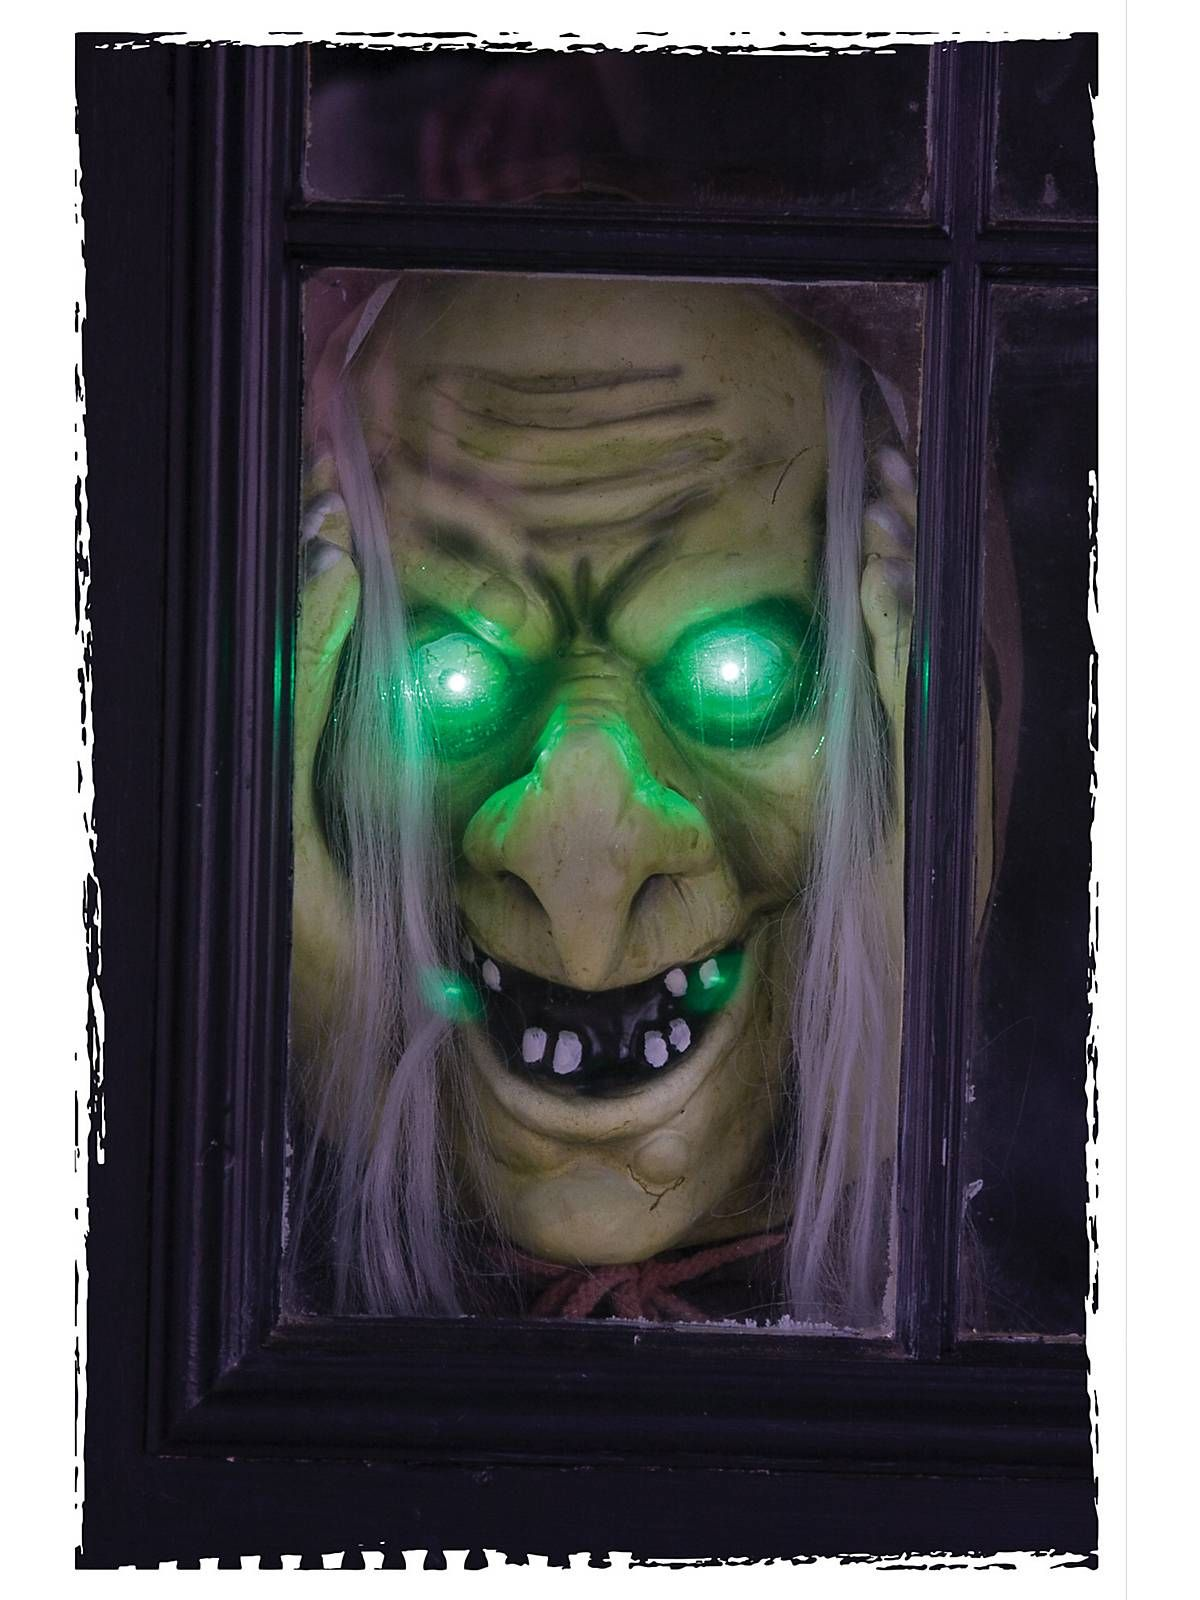 peekaboo witch prop zombie props and decorations at frightcatalogcom - Fright Catalog Halloween Decorations